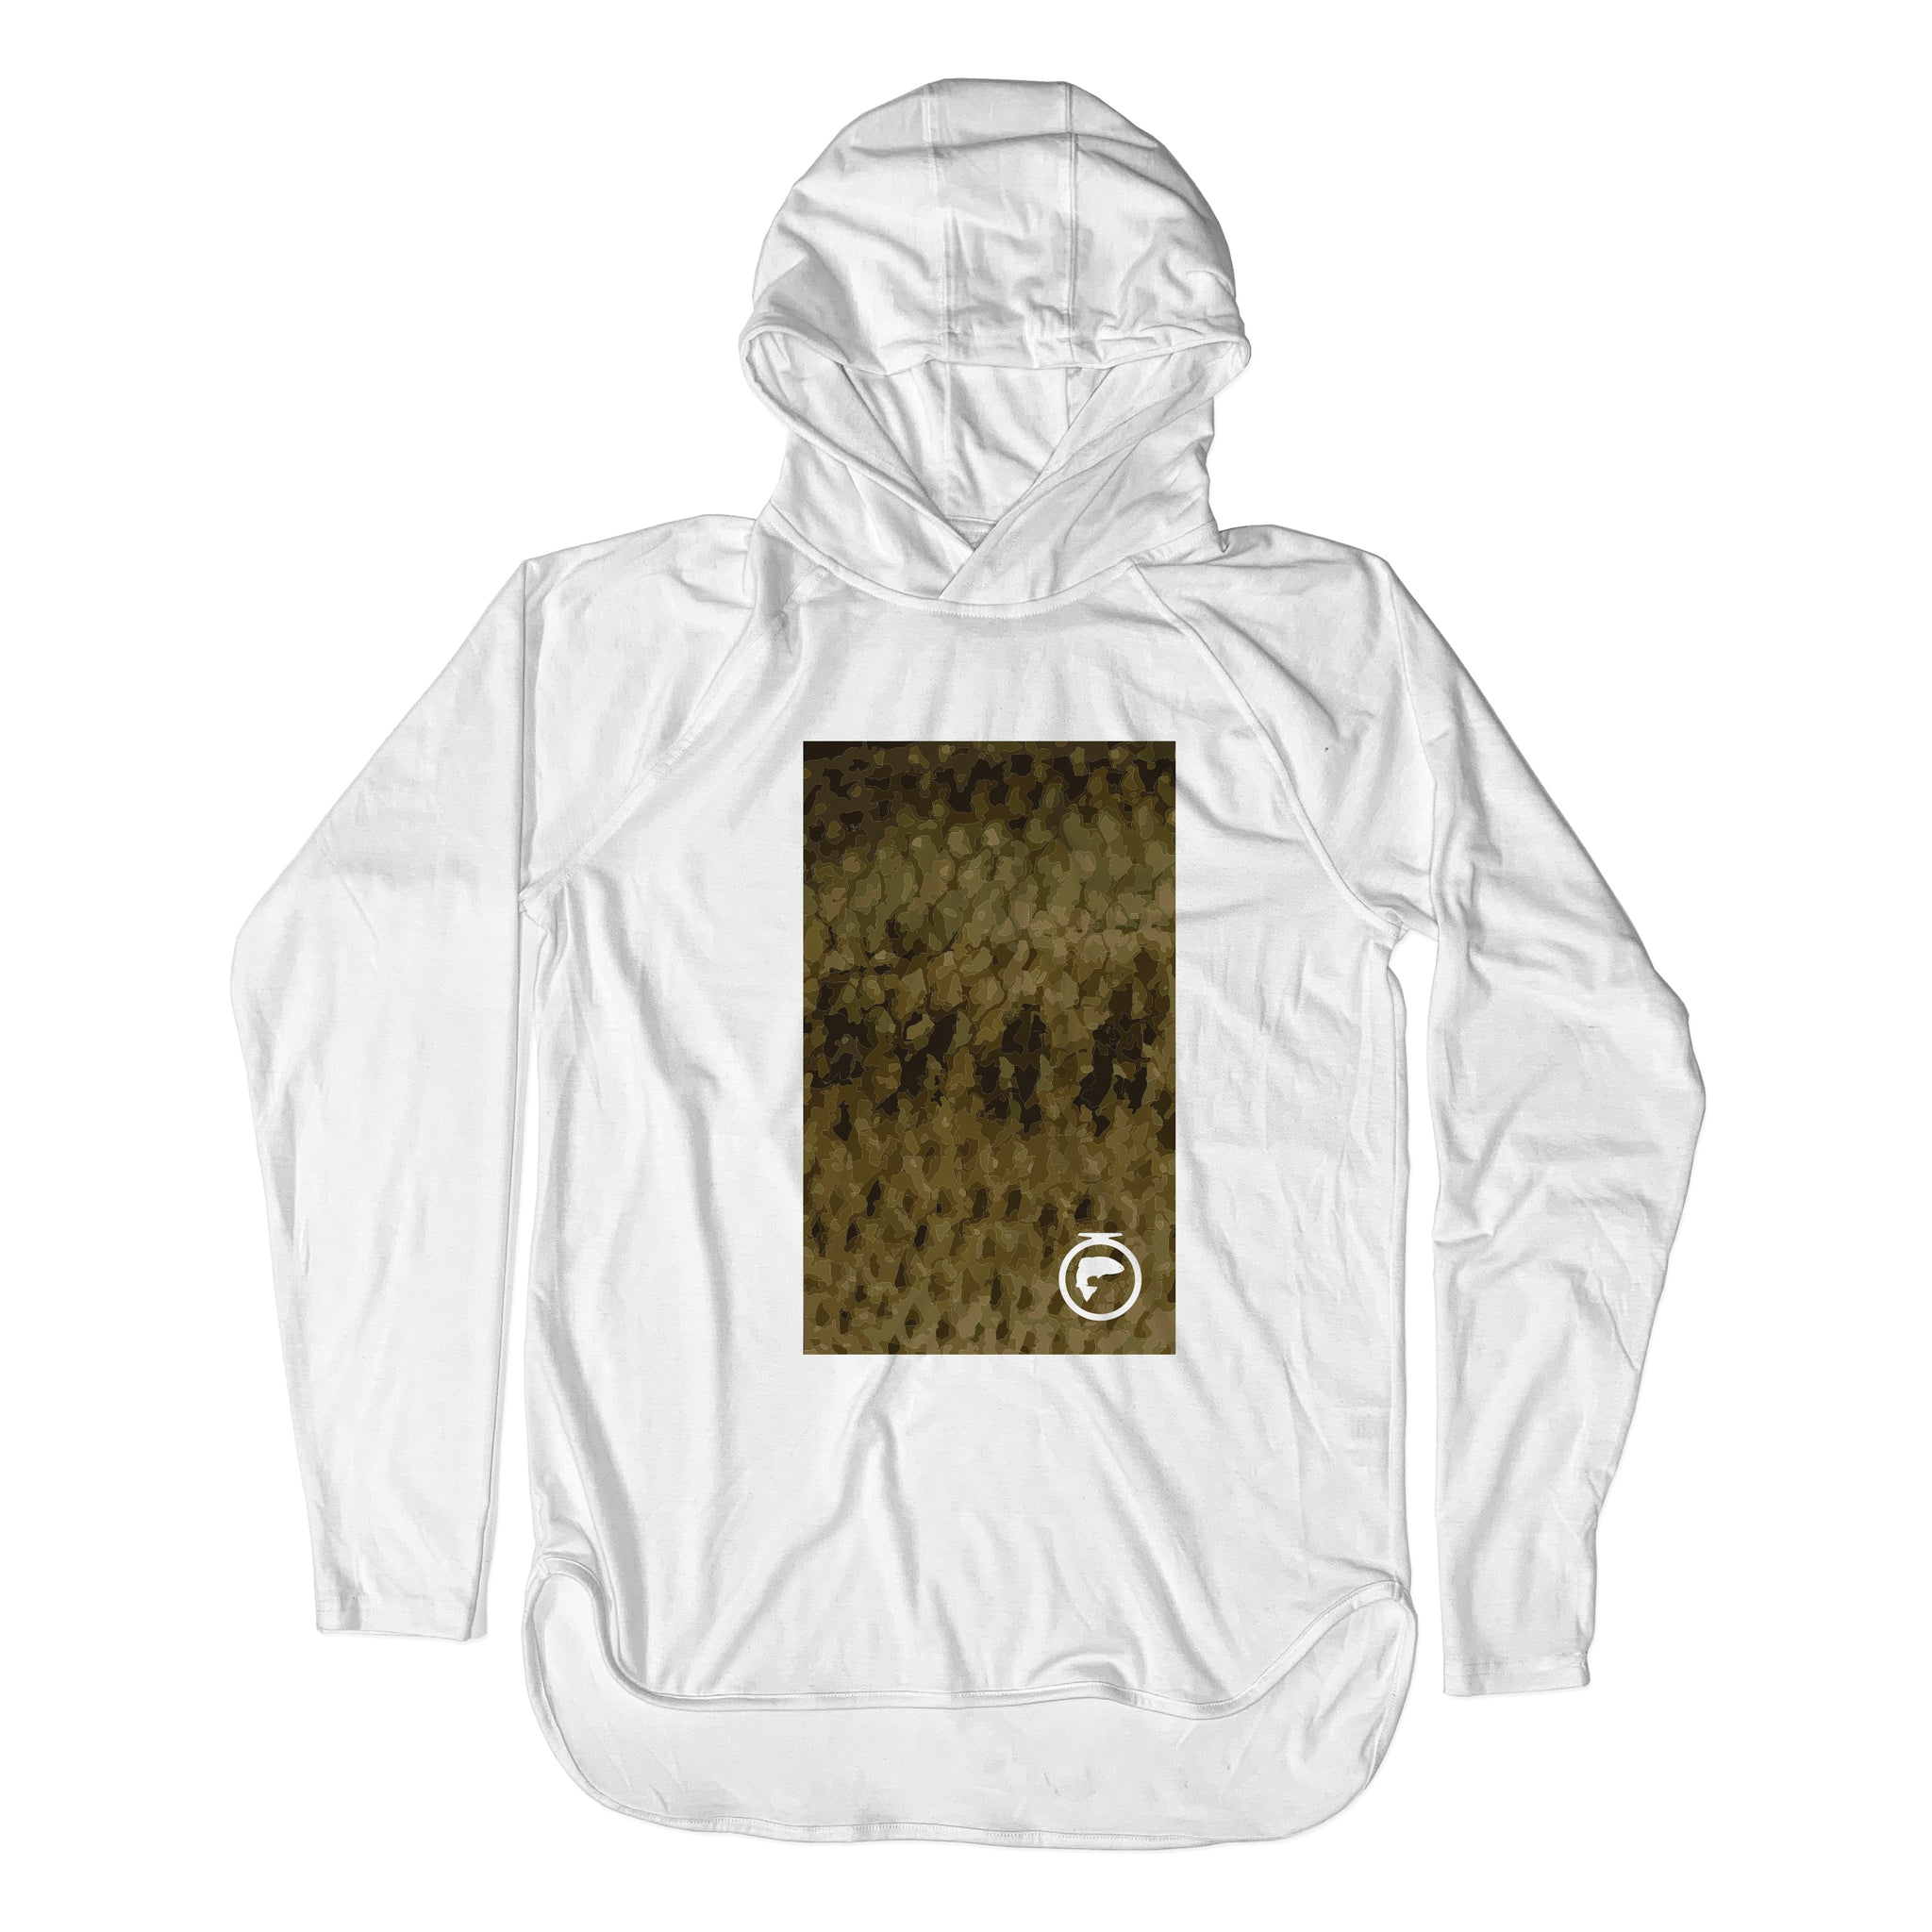 Xtreme Performance Pullover Sun Hoodie - Bass Skin Art - Unisex